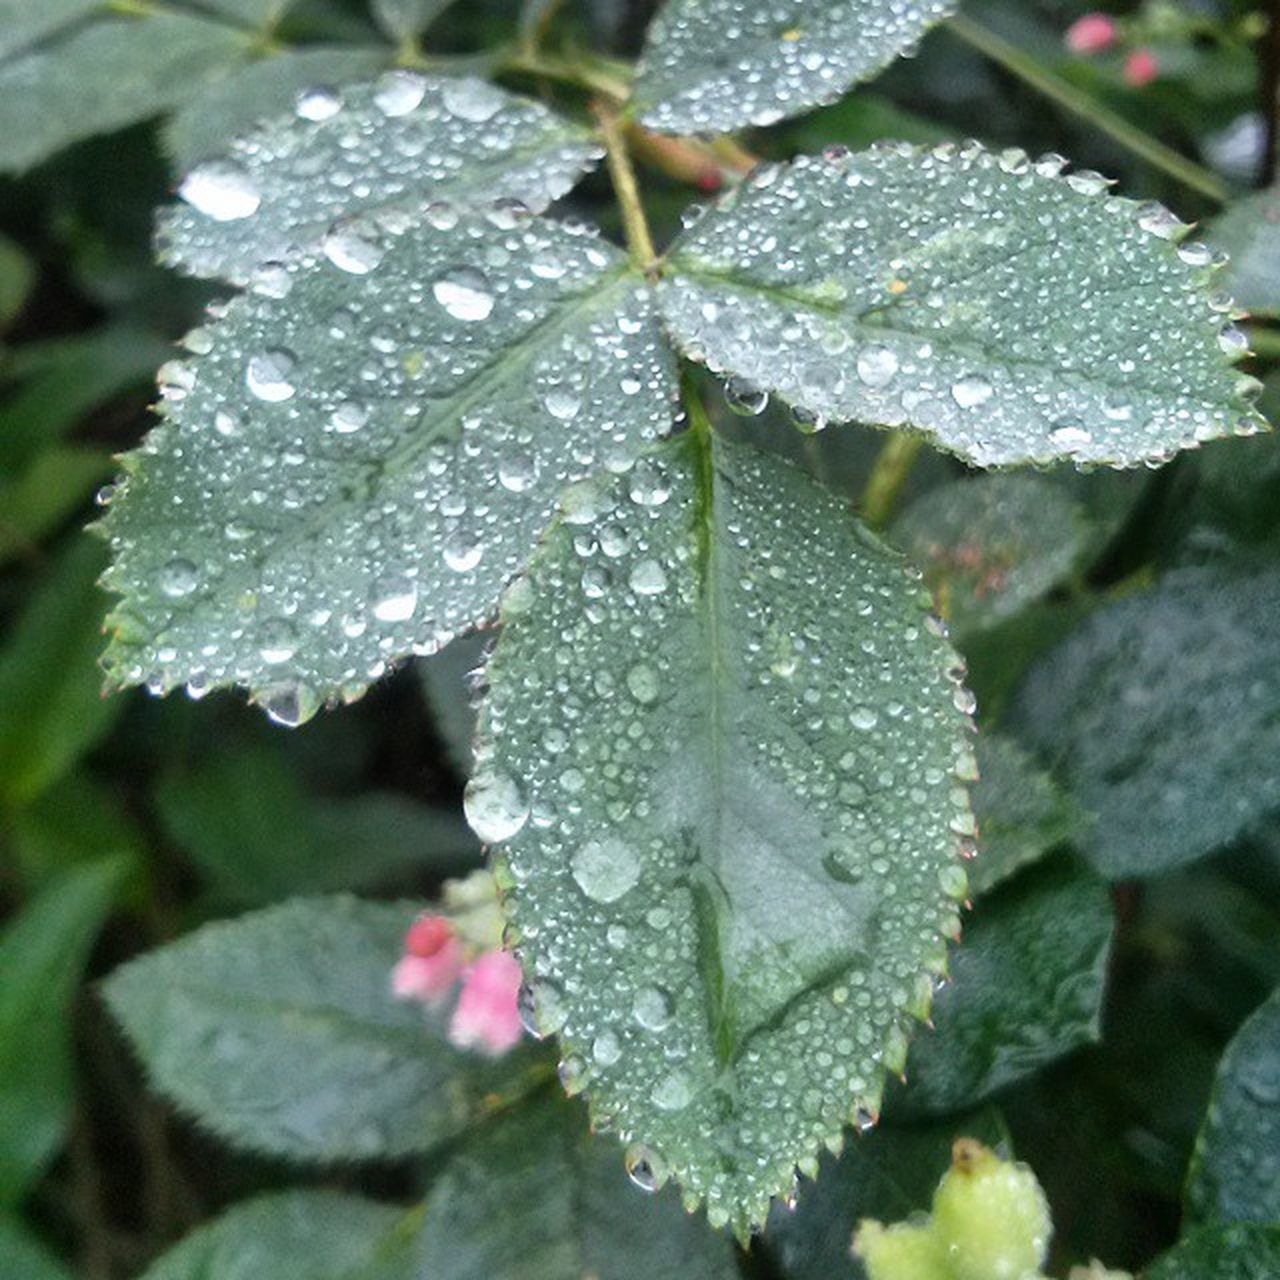 drop, water, leaf, wet, nature, weather, close-up, day, raindrop, no people, green color, beauty in nature, fragility, freshness, growth, outdoors, plant, cold temperature, periwinkle